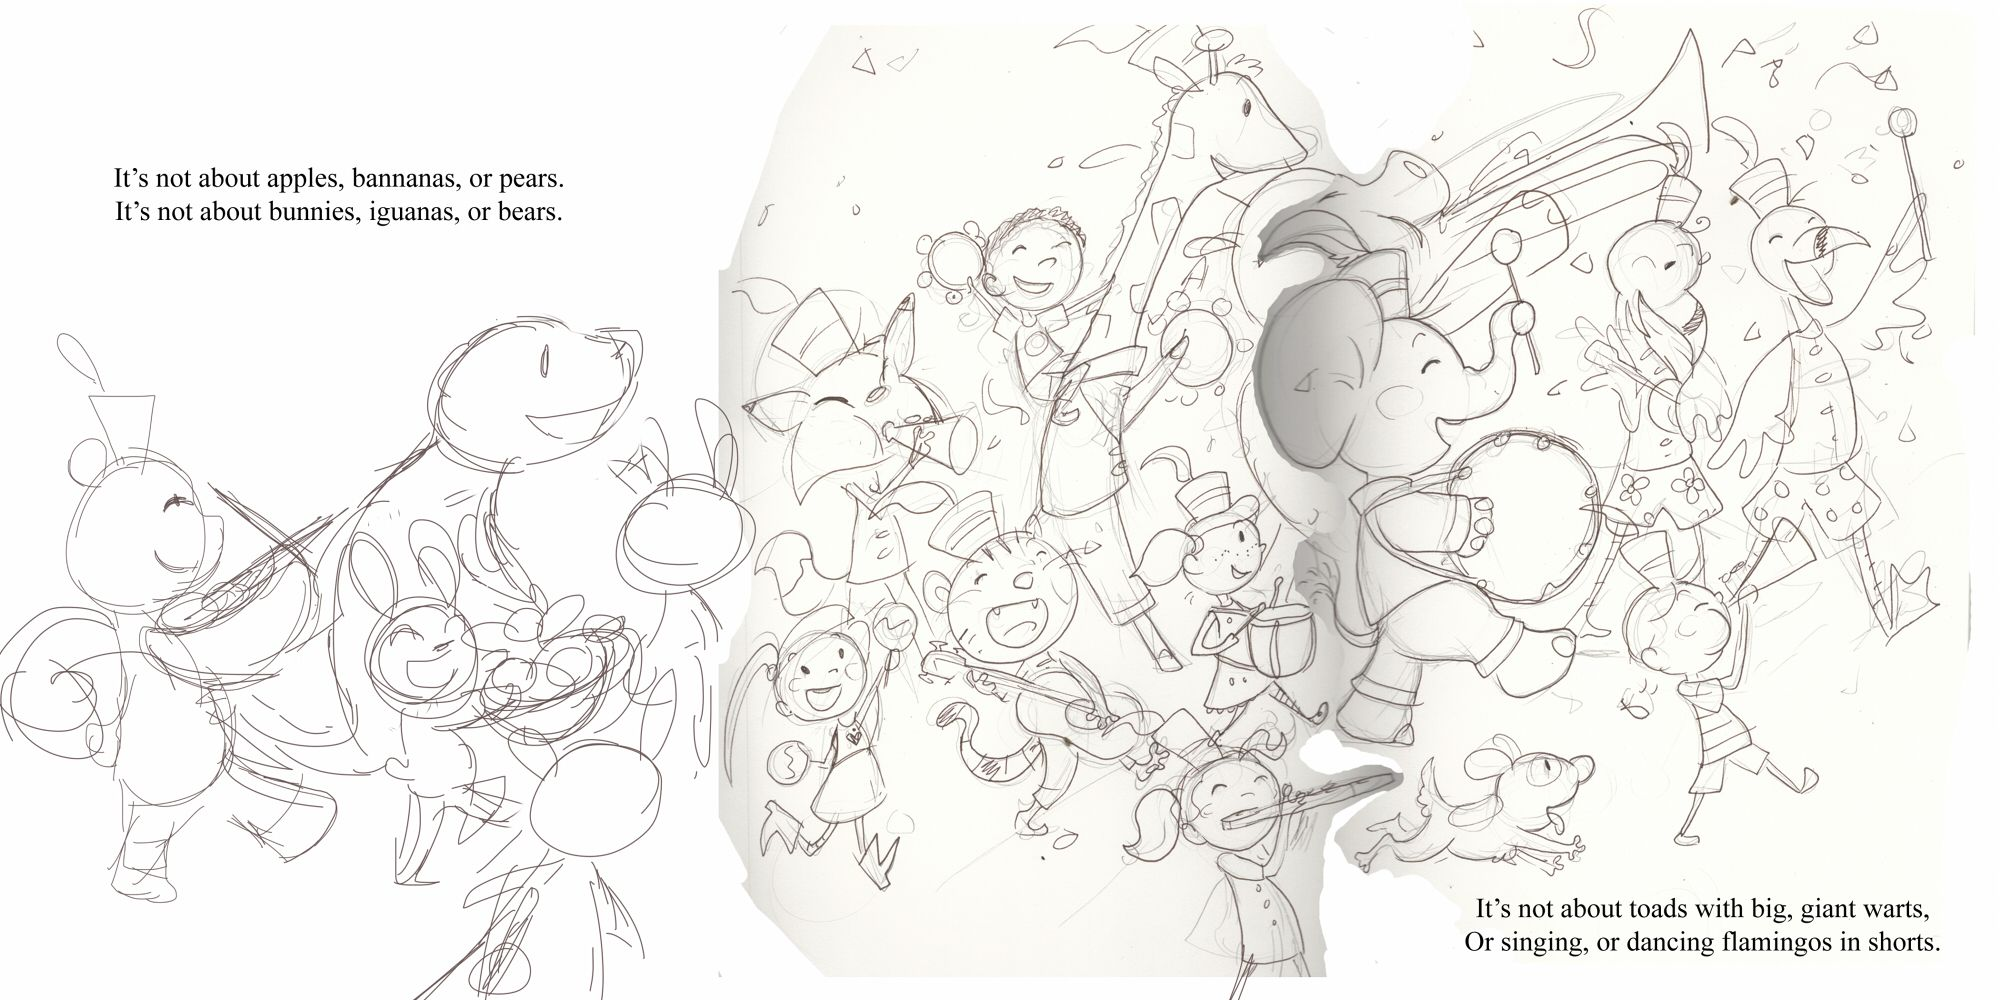 Second Page ROUGH sketch of